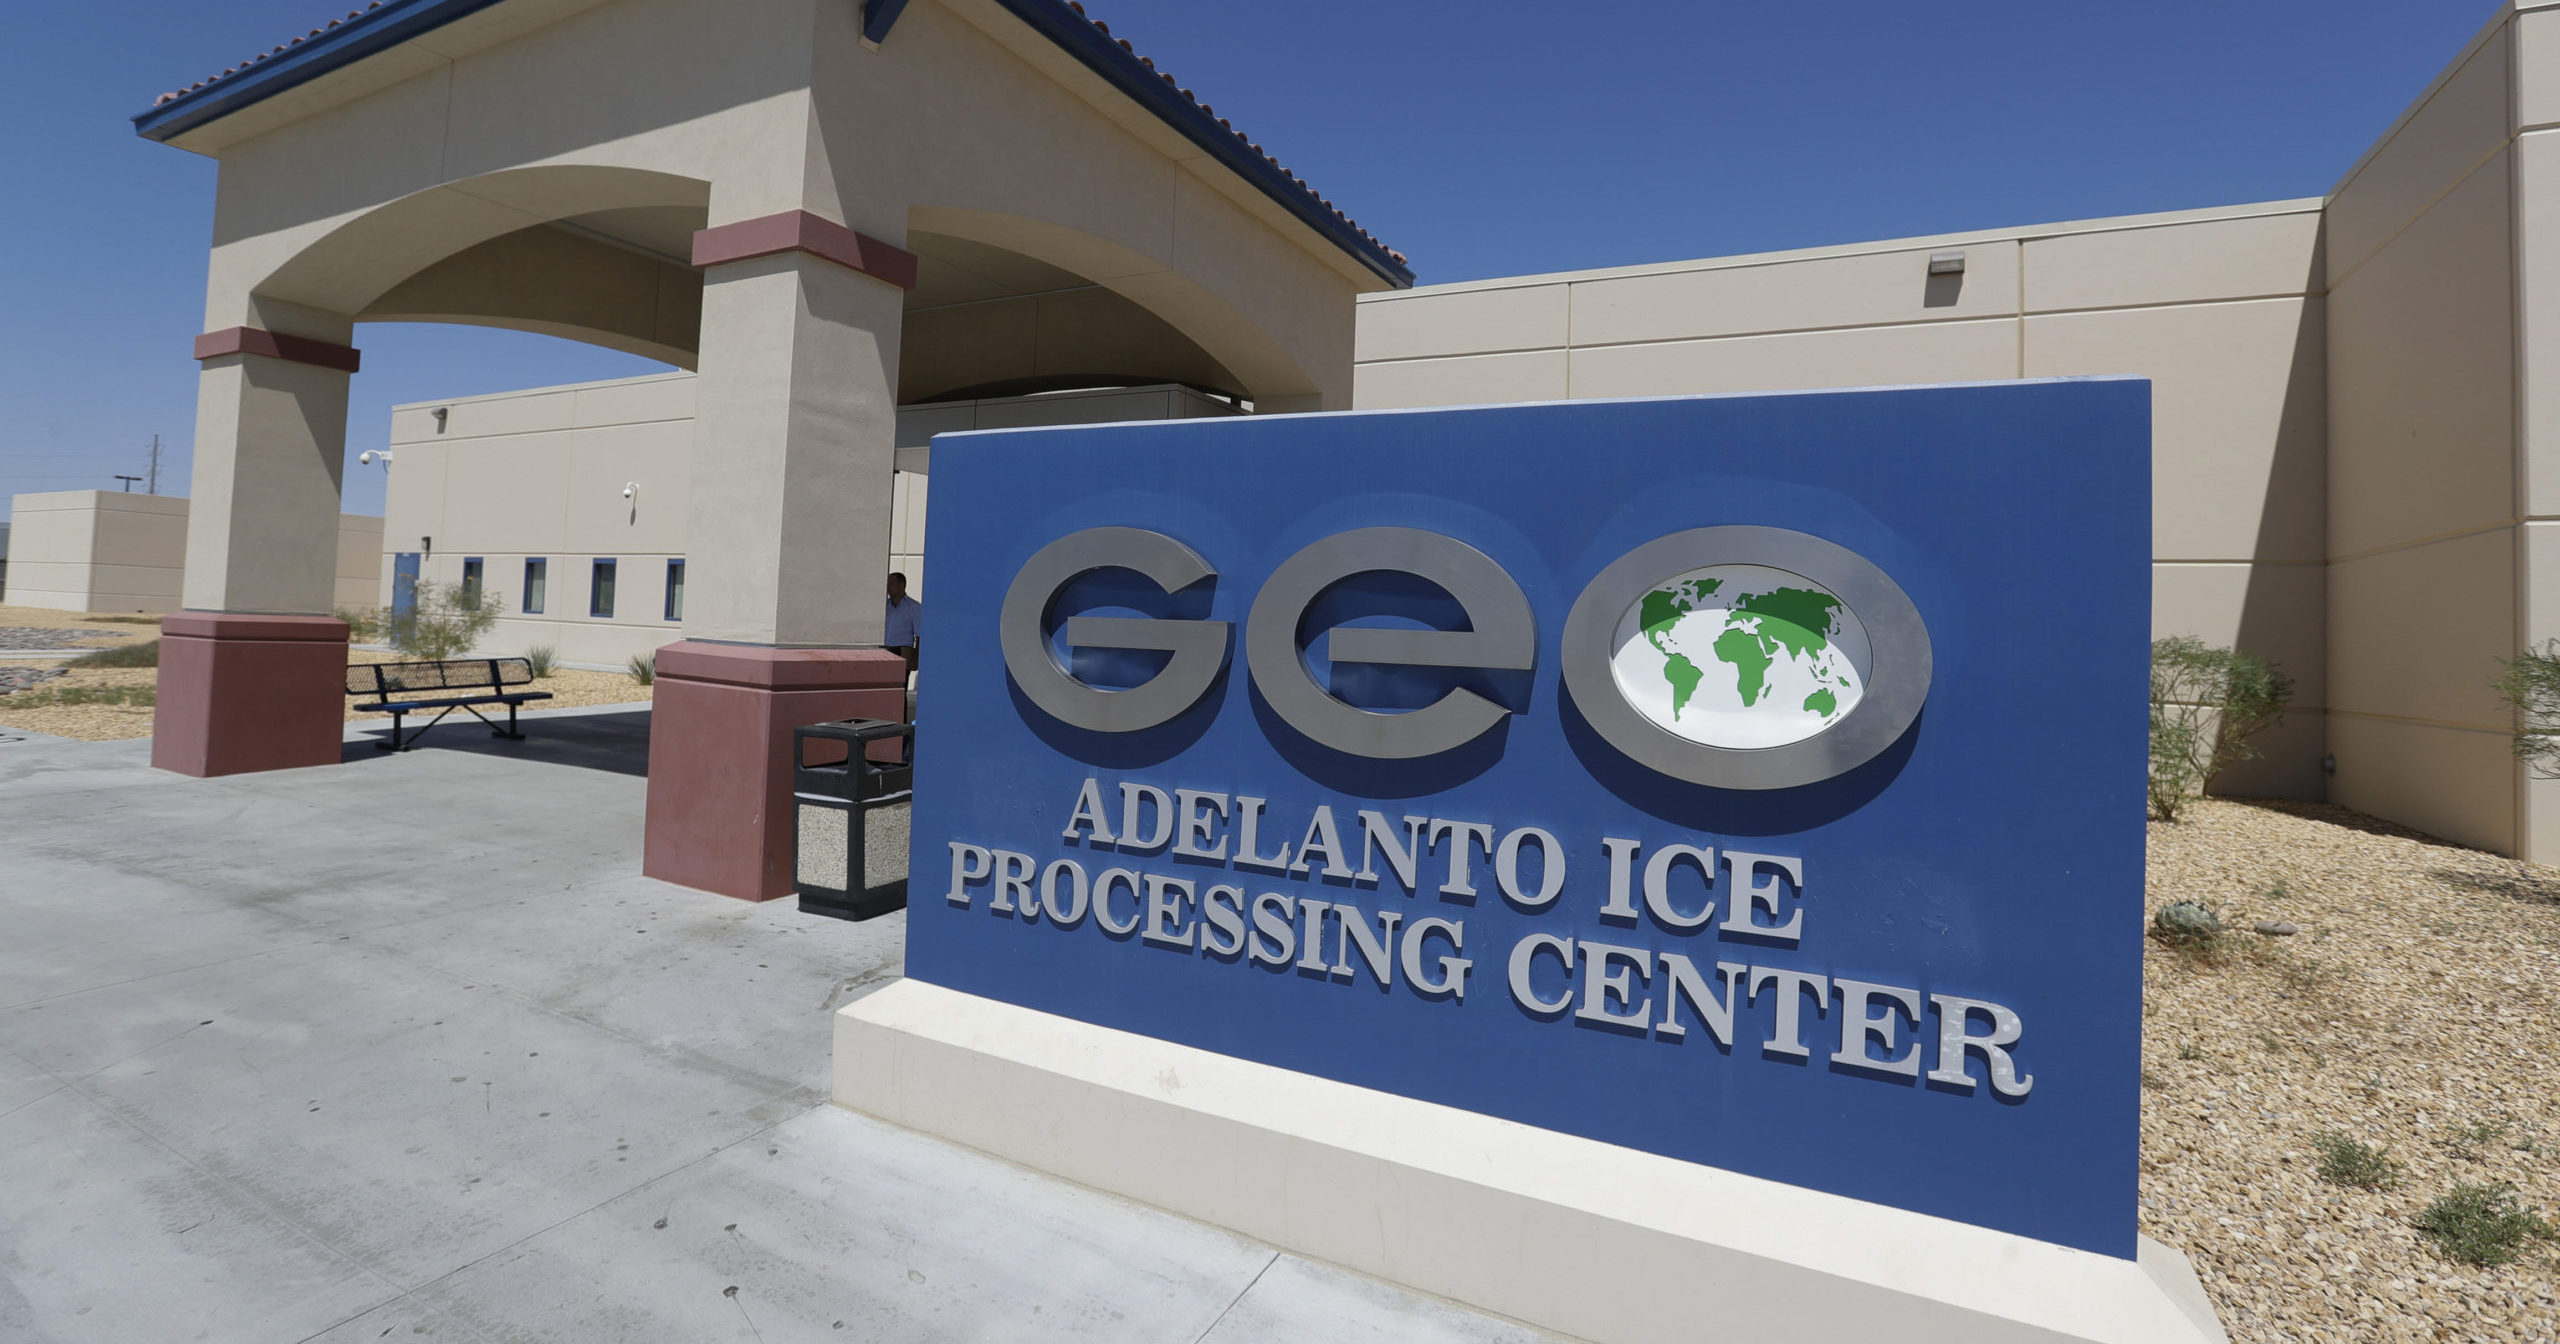 This Aug. 28, 2019, file photo shows the Adelanto US Immigration and Enforcement Processing Center operated by GEO Group, a Florida-based company specializing in privatized corrections, in Adelanto, California.